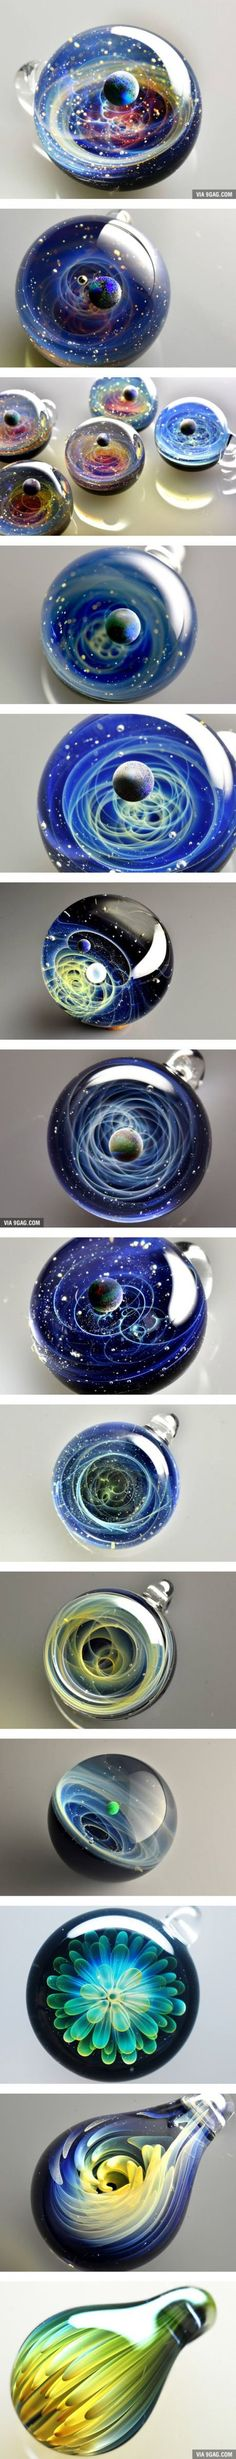 Extraordinary Space Glass With Solar Systems And Flowers Encased In It (By Satoshi Tomizu) http://amzn.to/2sZizM2